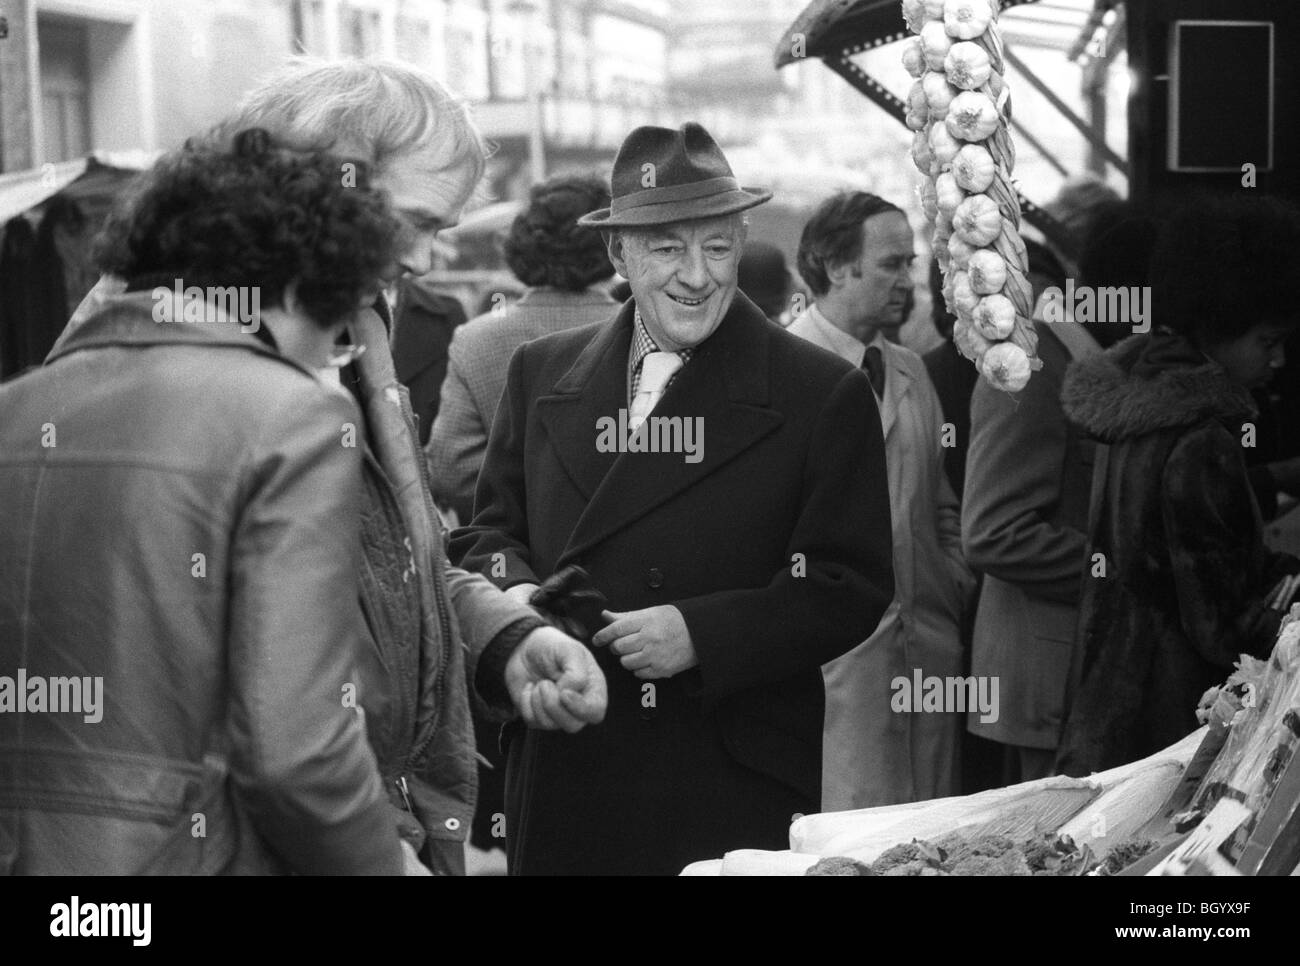 Sir Alec Guinness London 1977 UK. Soho market HOMER SYKES - Stock Image